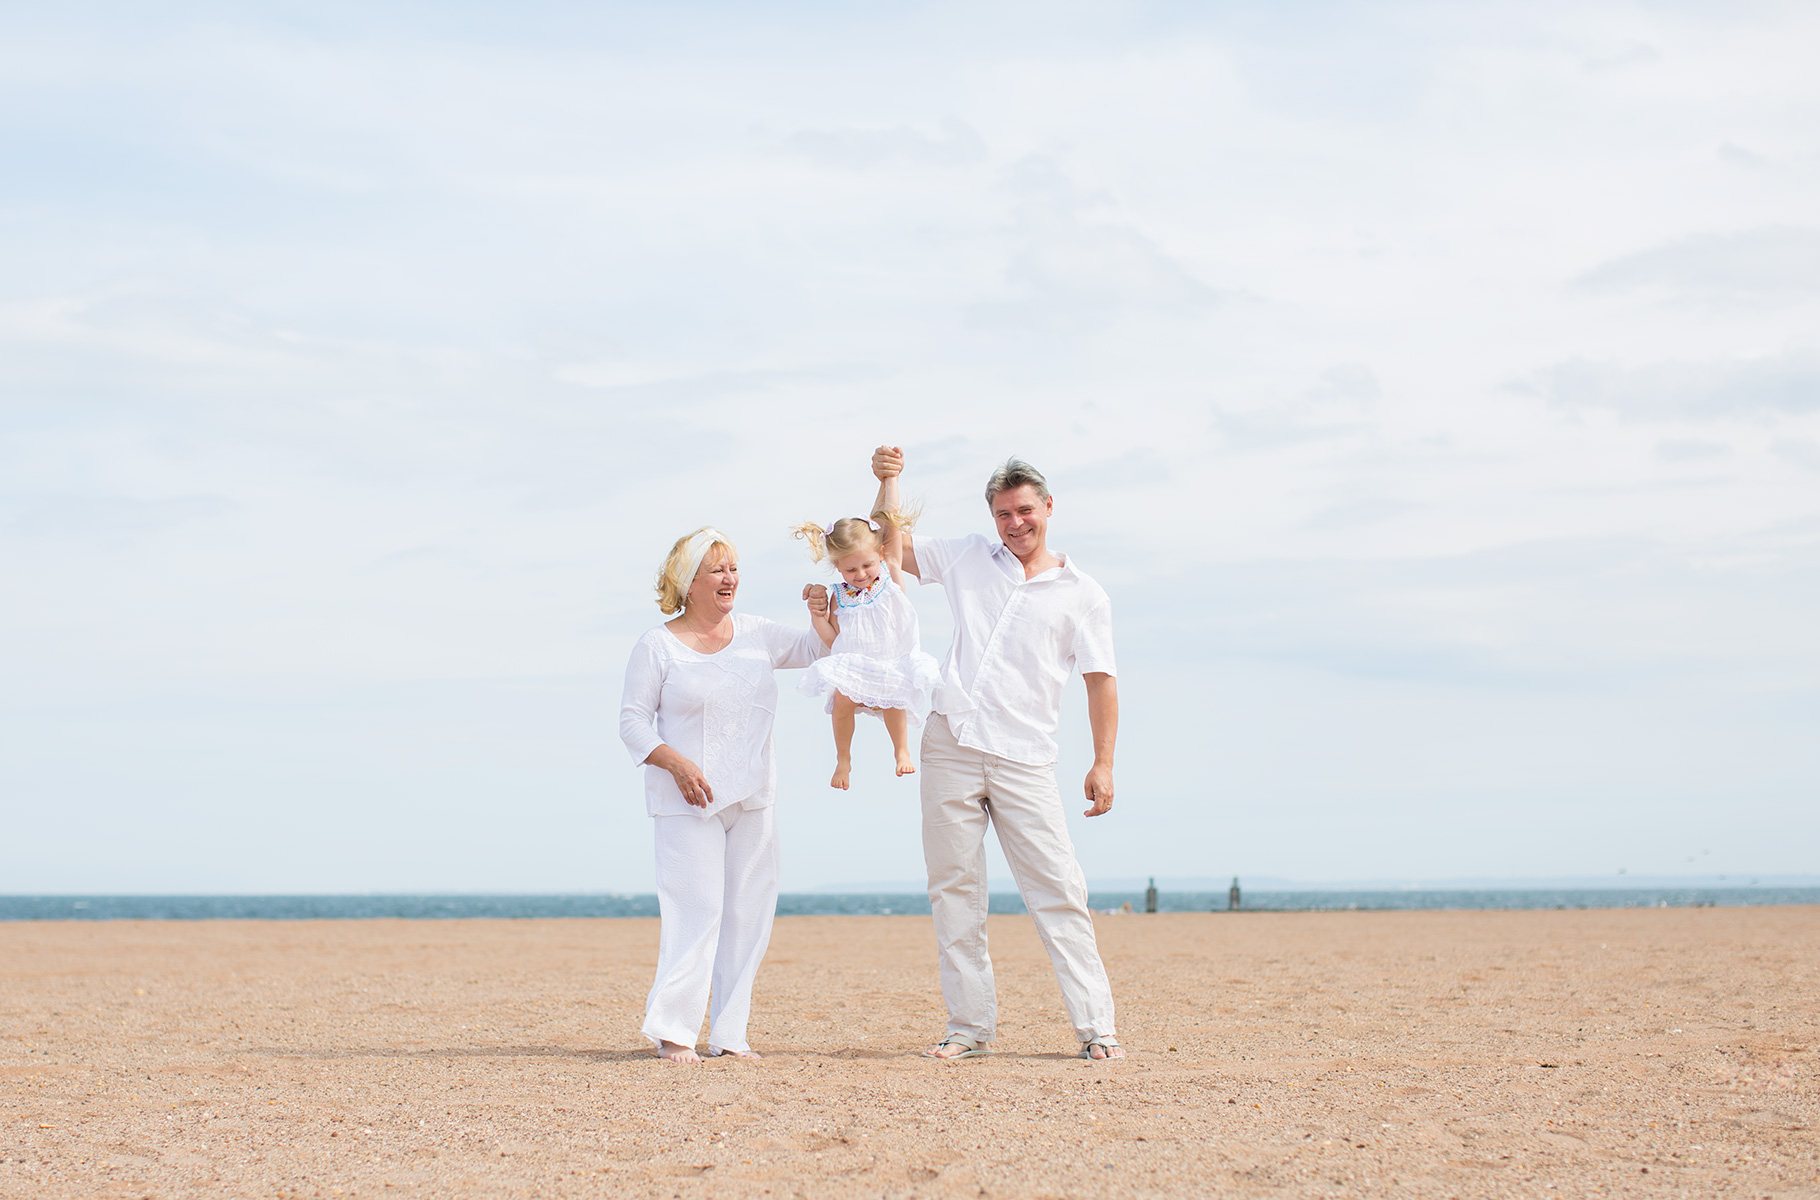 Three people during lifestyle session at the beach